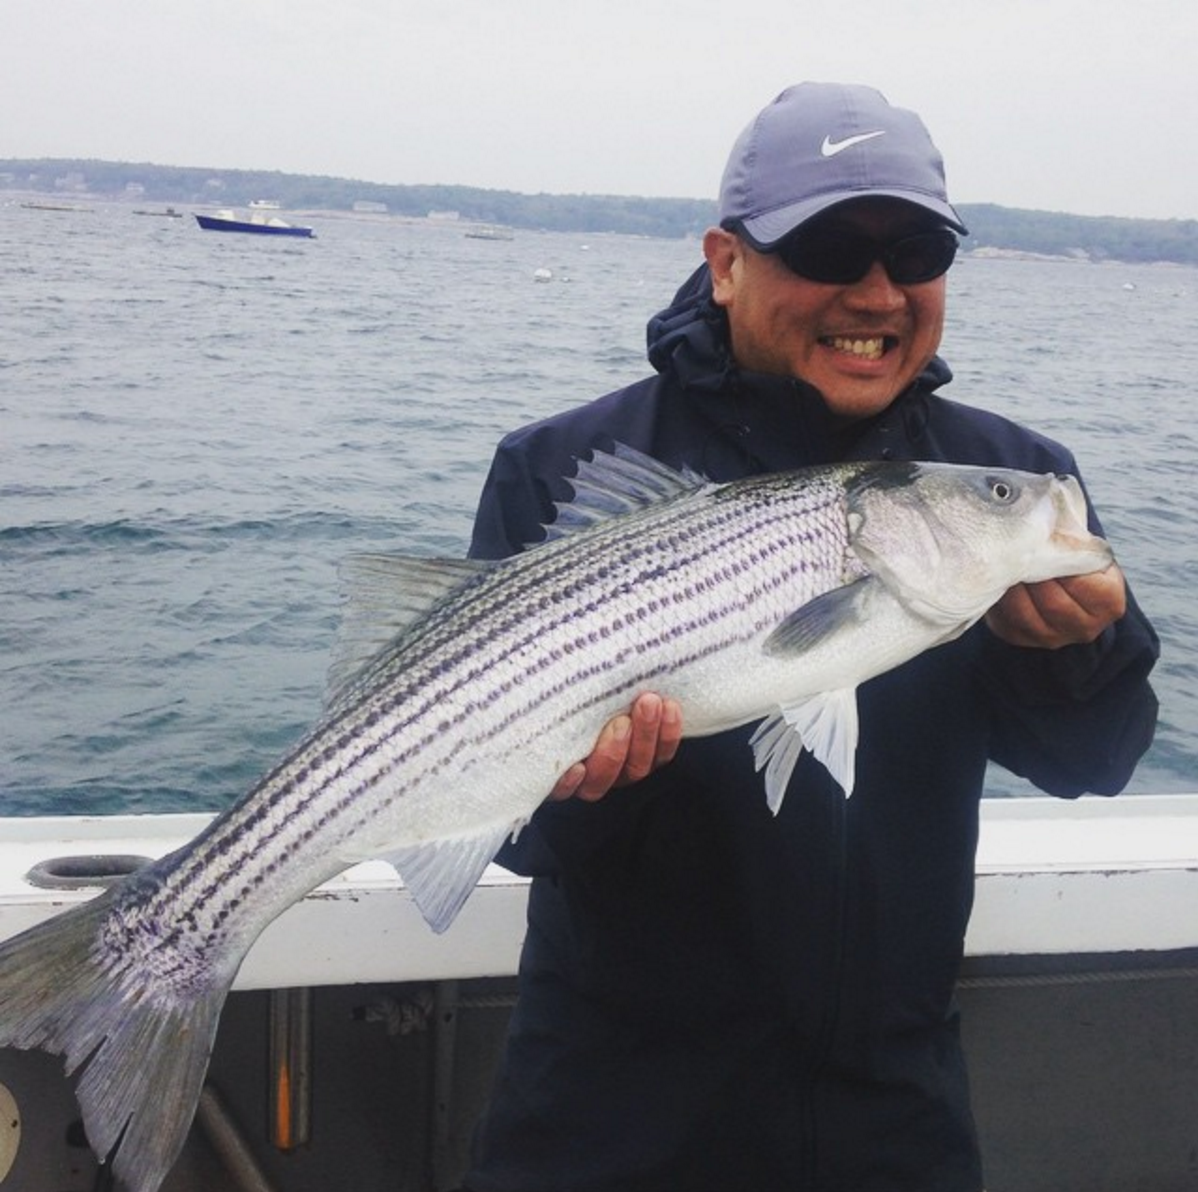 Striped bass fishing charters gloucester ma connemara bay for Bass fishing trips